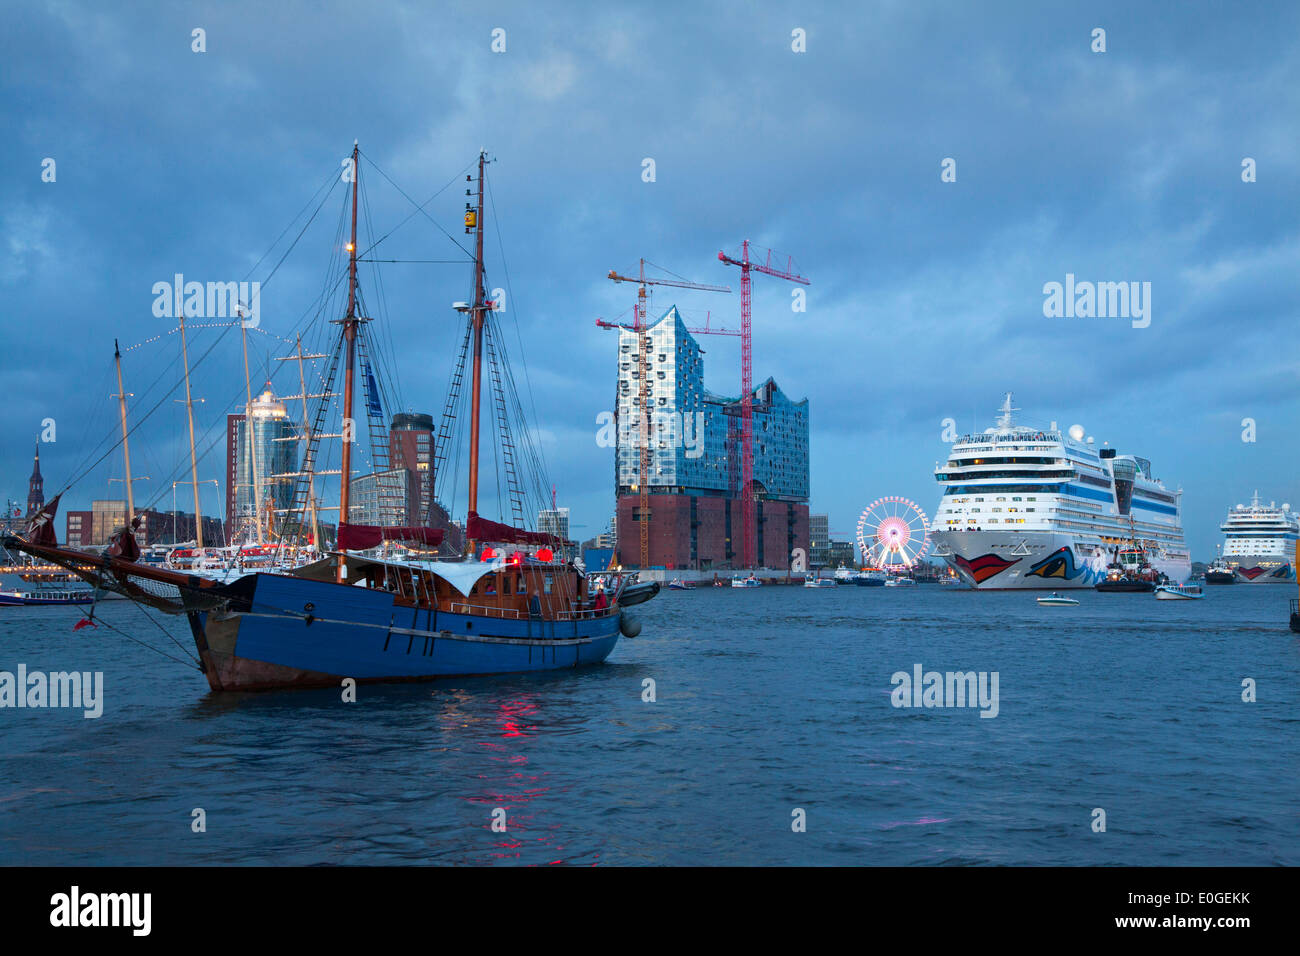 Elbphilharmonie, sailing ship Gotland, cruise ships AIDAsol and AIDAblu clearing port in the evening, Hamburg, Germany, Europe - Stock Image